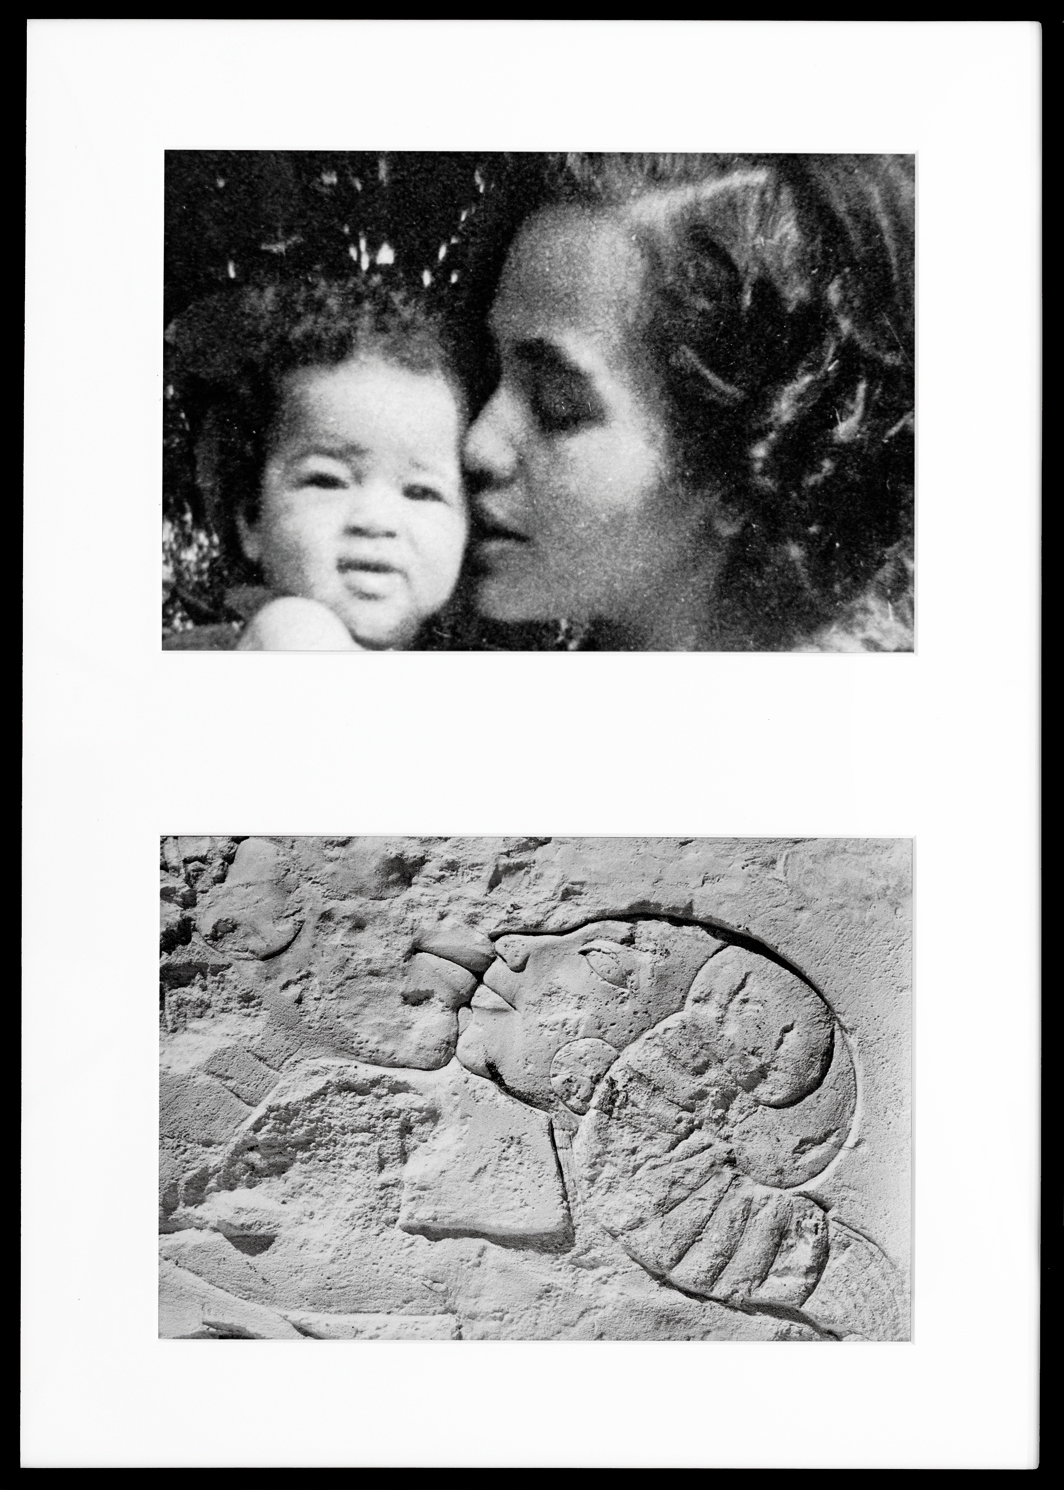 "Lorraine O'Grady, Miscegenated Family Album (A Mother's Kiss), T: Candace and Devonian; B: Nefertiti and daughter, 1980/1994, diptych, Cibachrome prints, overall 37 × 26"". From Miscegenated Family Album, 1980/1994. © Lorraine O'Grady/Artists Rights Society (ARS), New York."